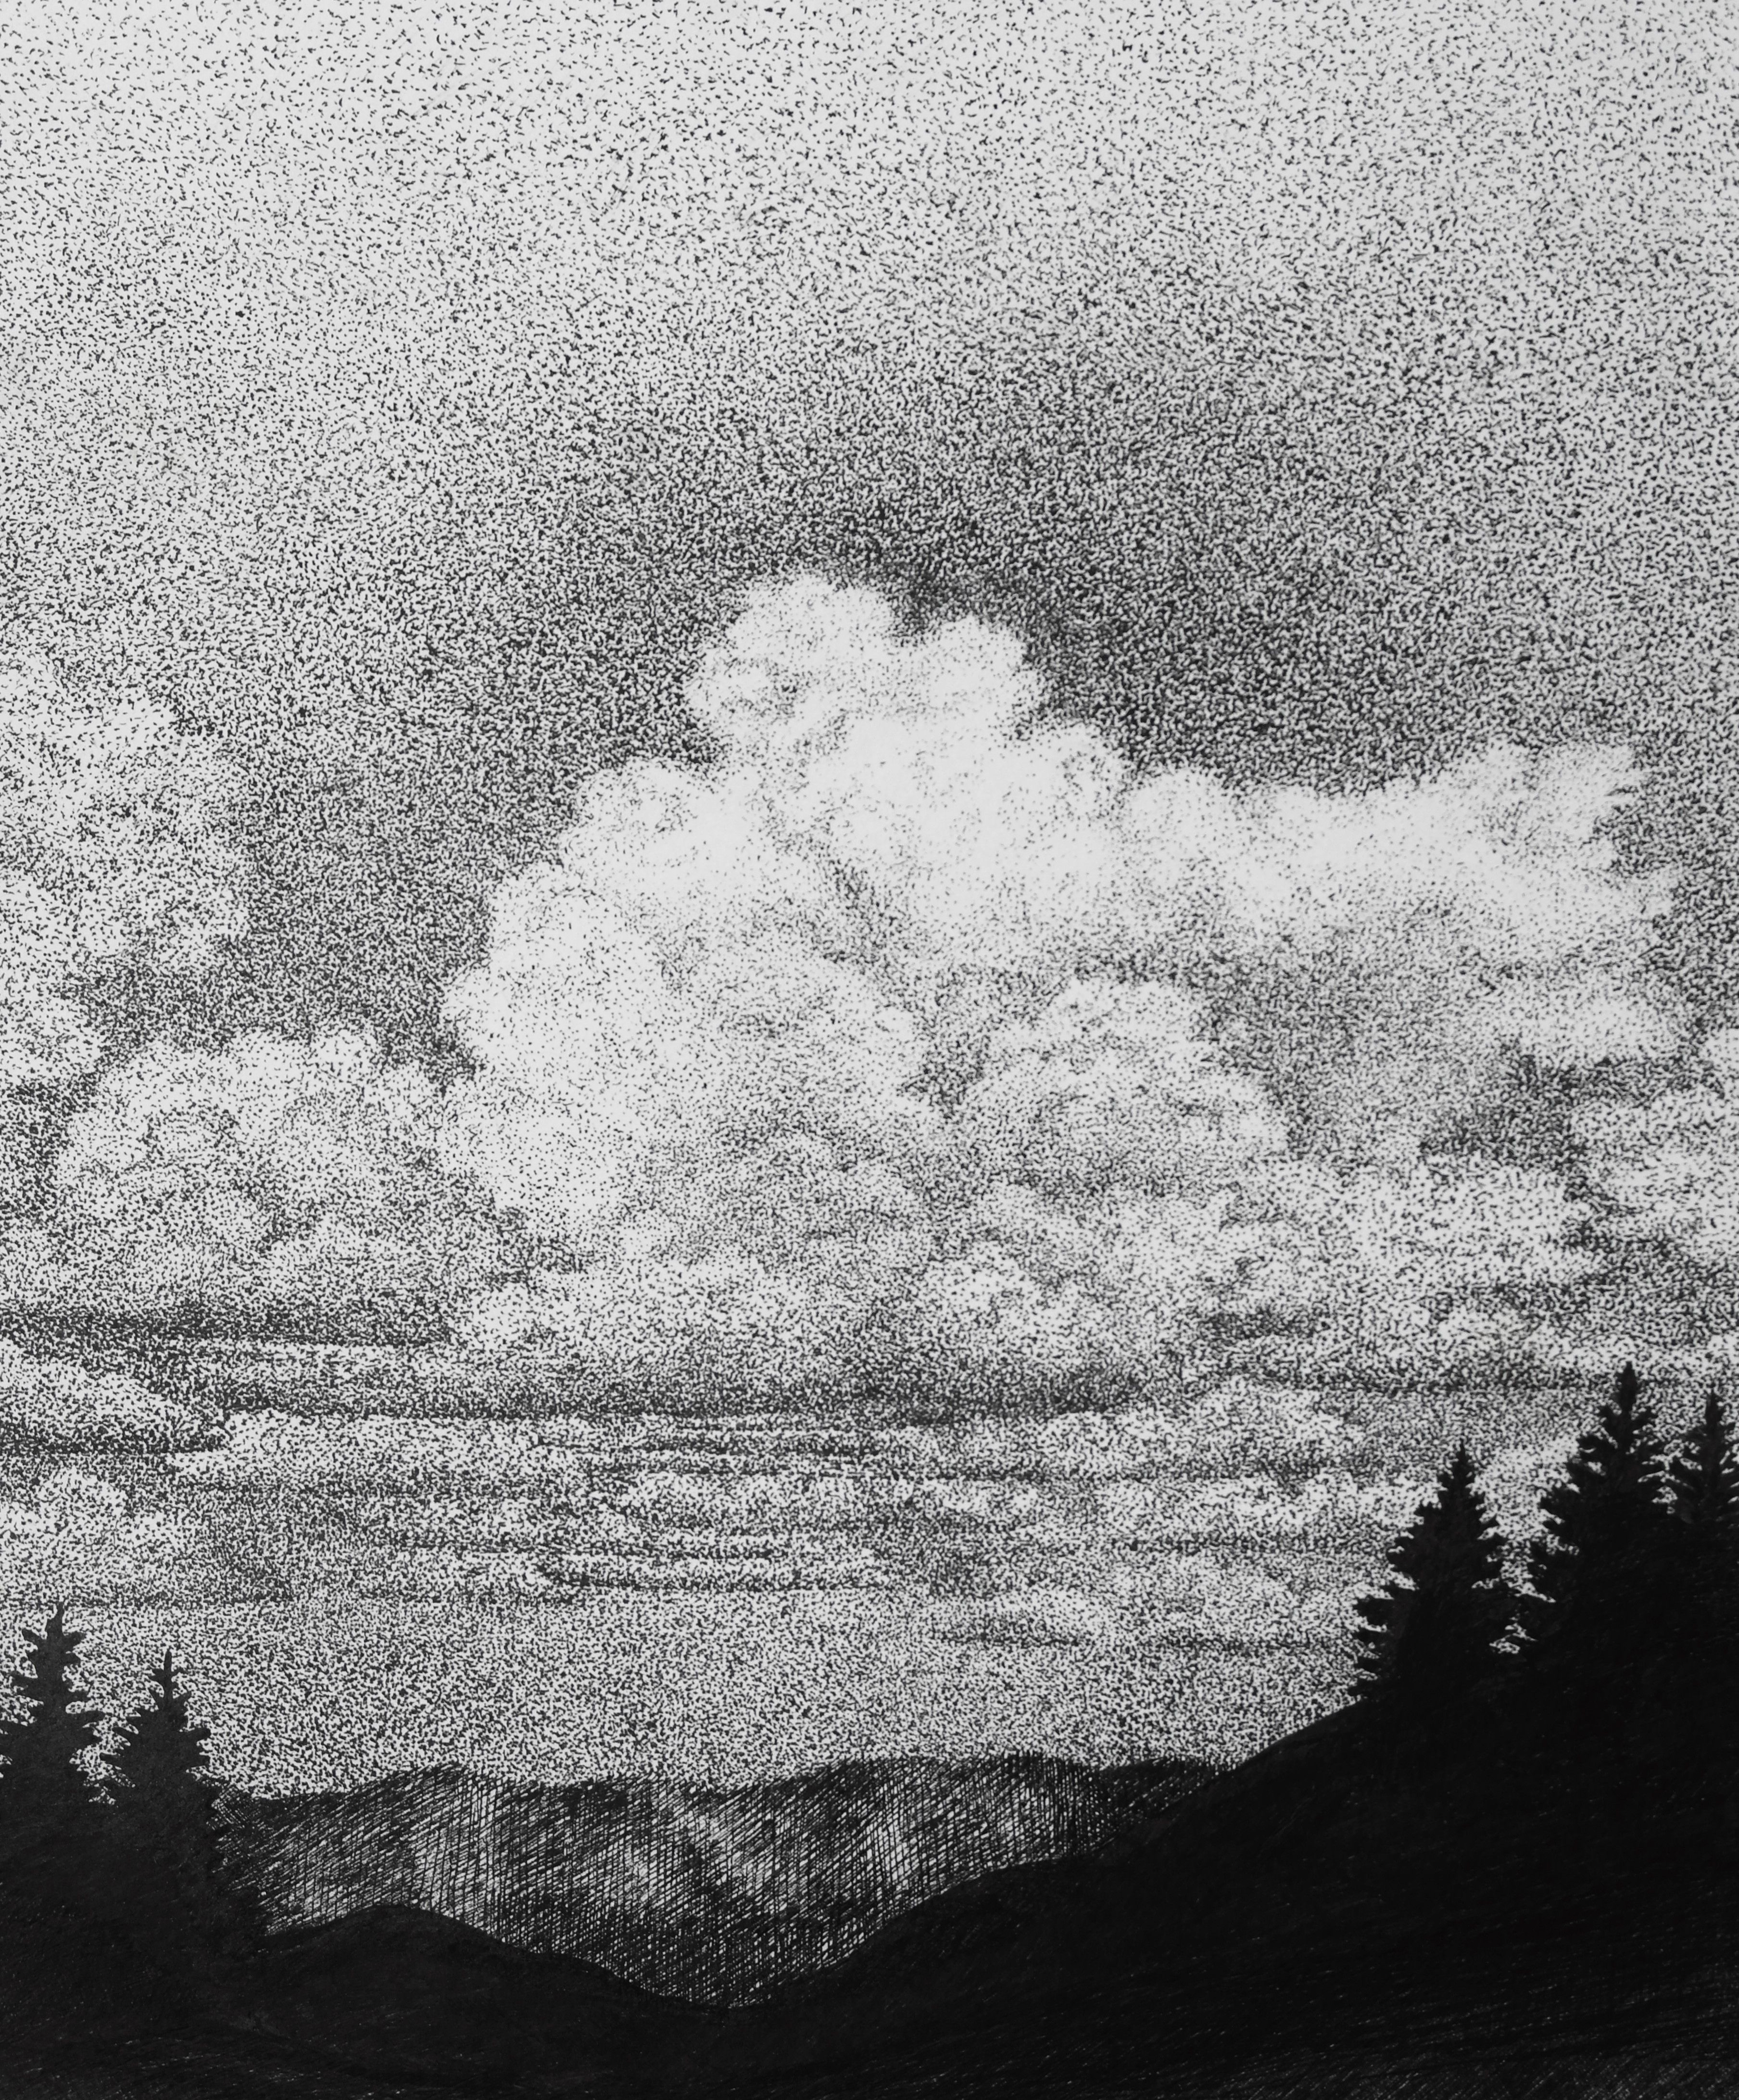 Pen And Ink Clouds : clouds, Altay,, Clouds, Valley,, Black, Drawing,, Paper, 21x29,, Thousands, Points, Cloud, Pointalism, Micron